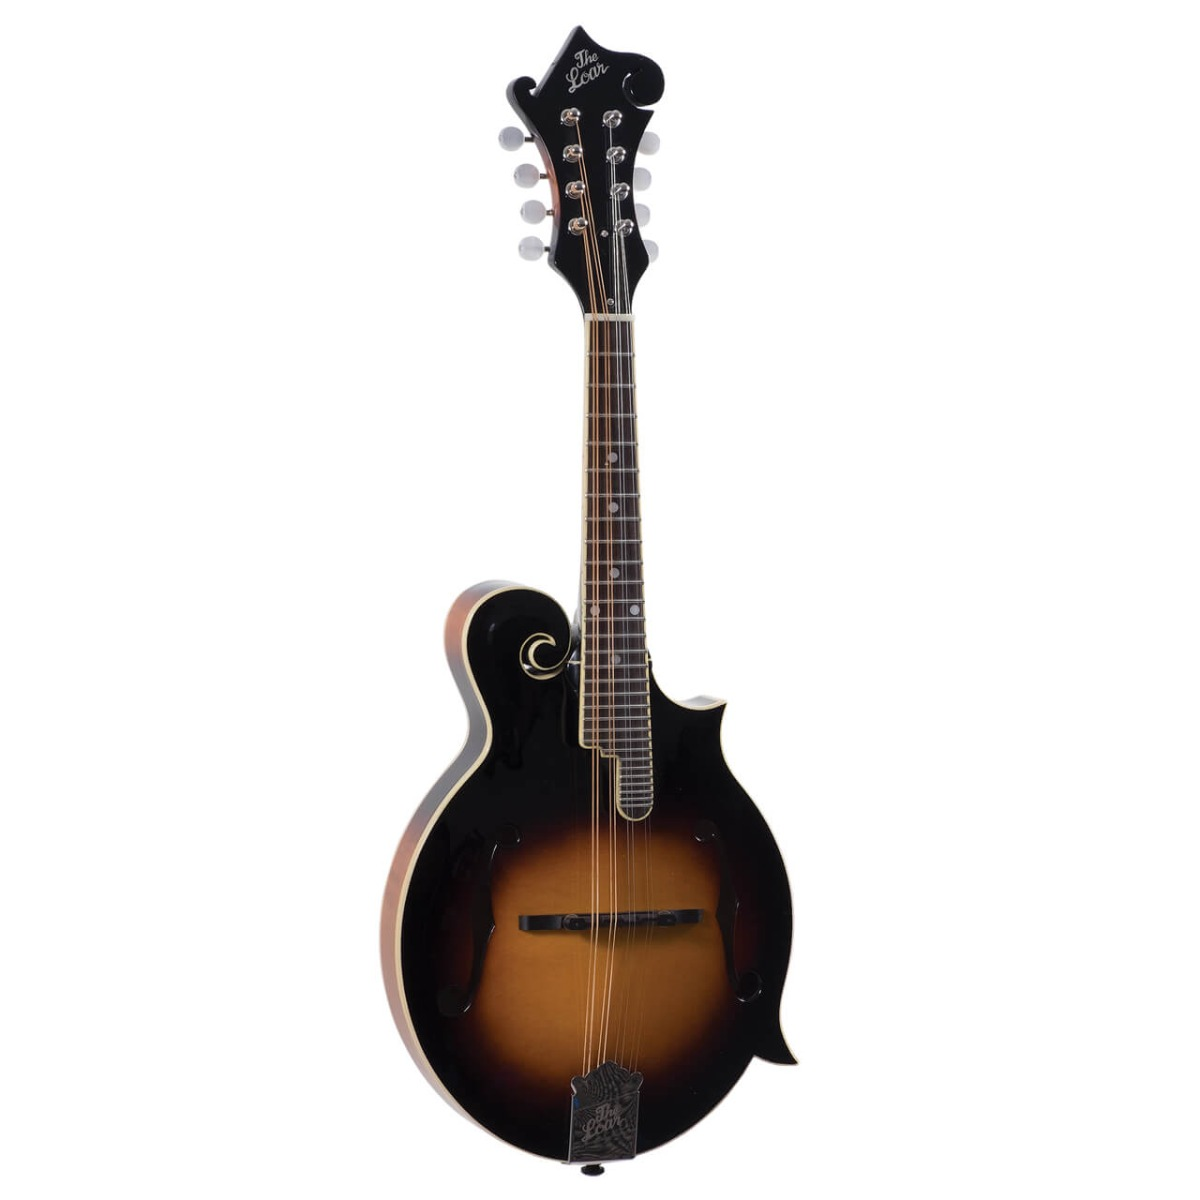 The Loar LM-520 VS mandolin Vintage Sunburst